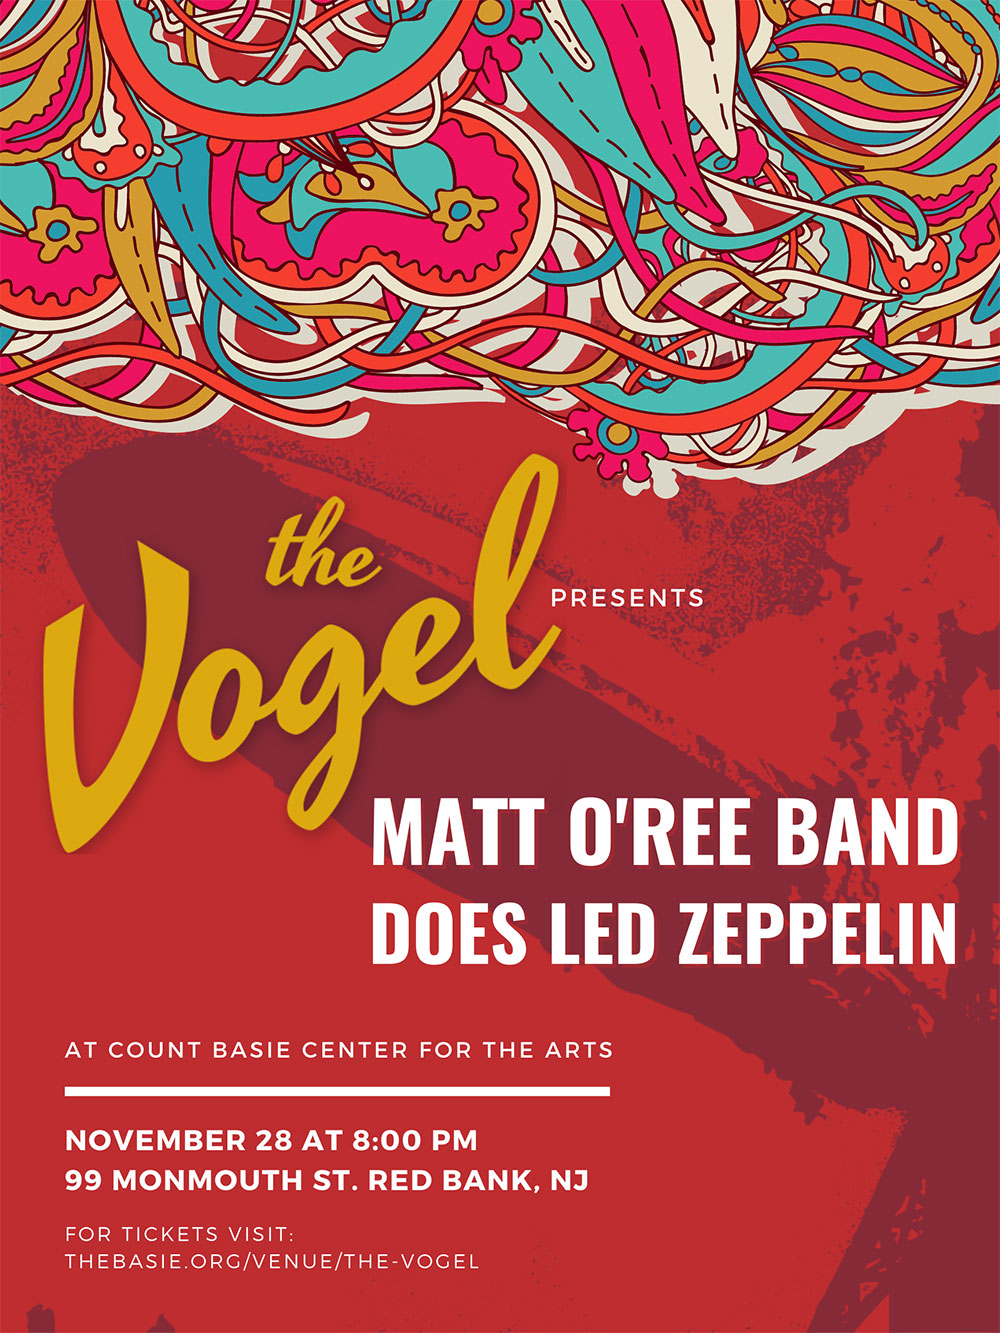 The Vogel presents Matt O'Ree Band Does Led Zeppelin